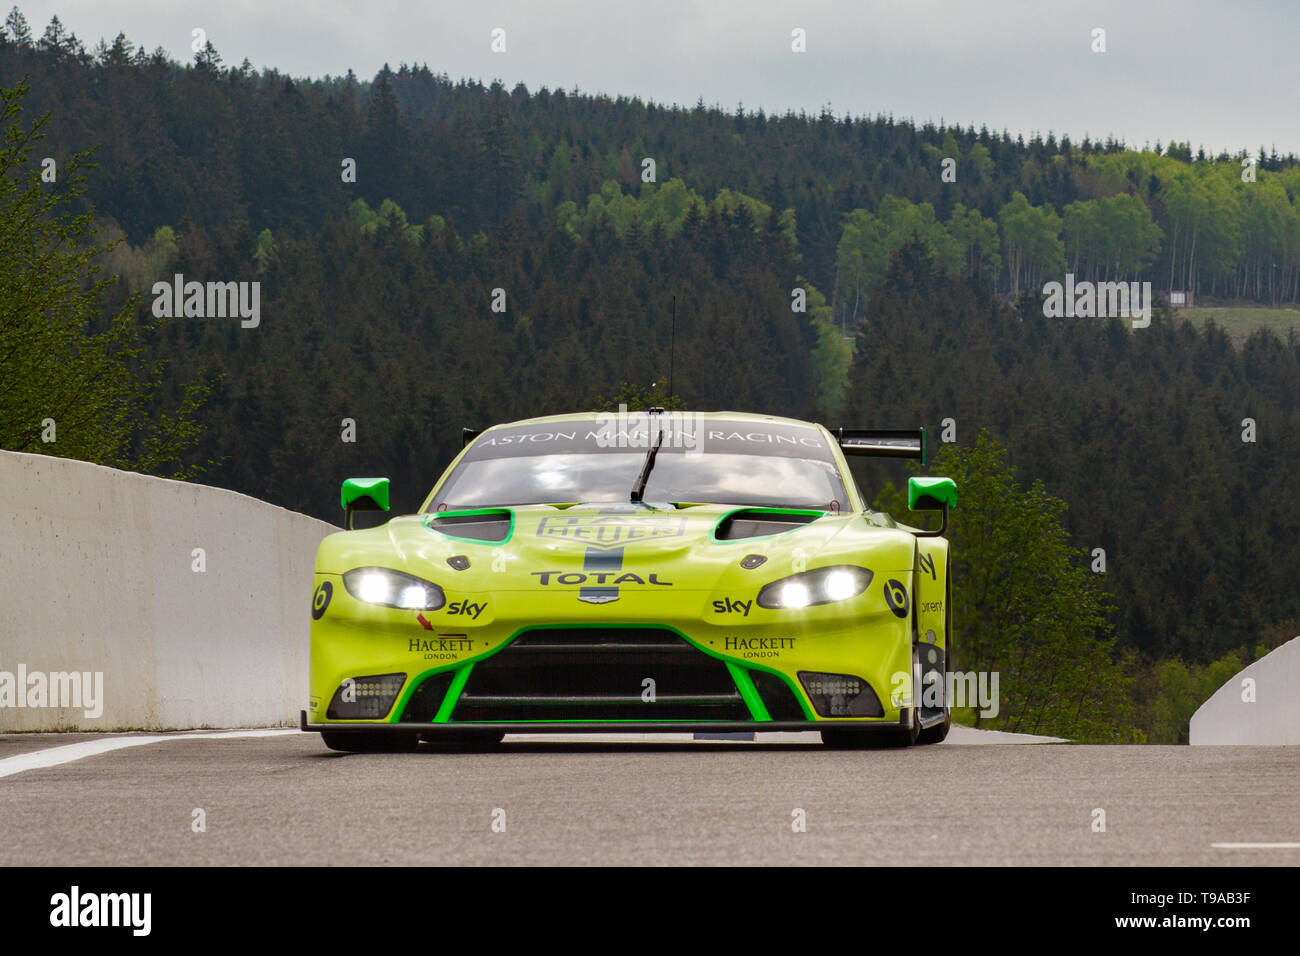 Friday Practice, WEC Total 6 Hours of Spa-Francorchamps 2019 Stock Photo